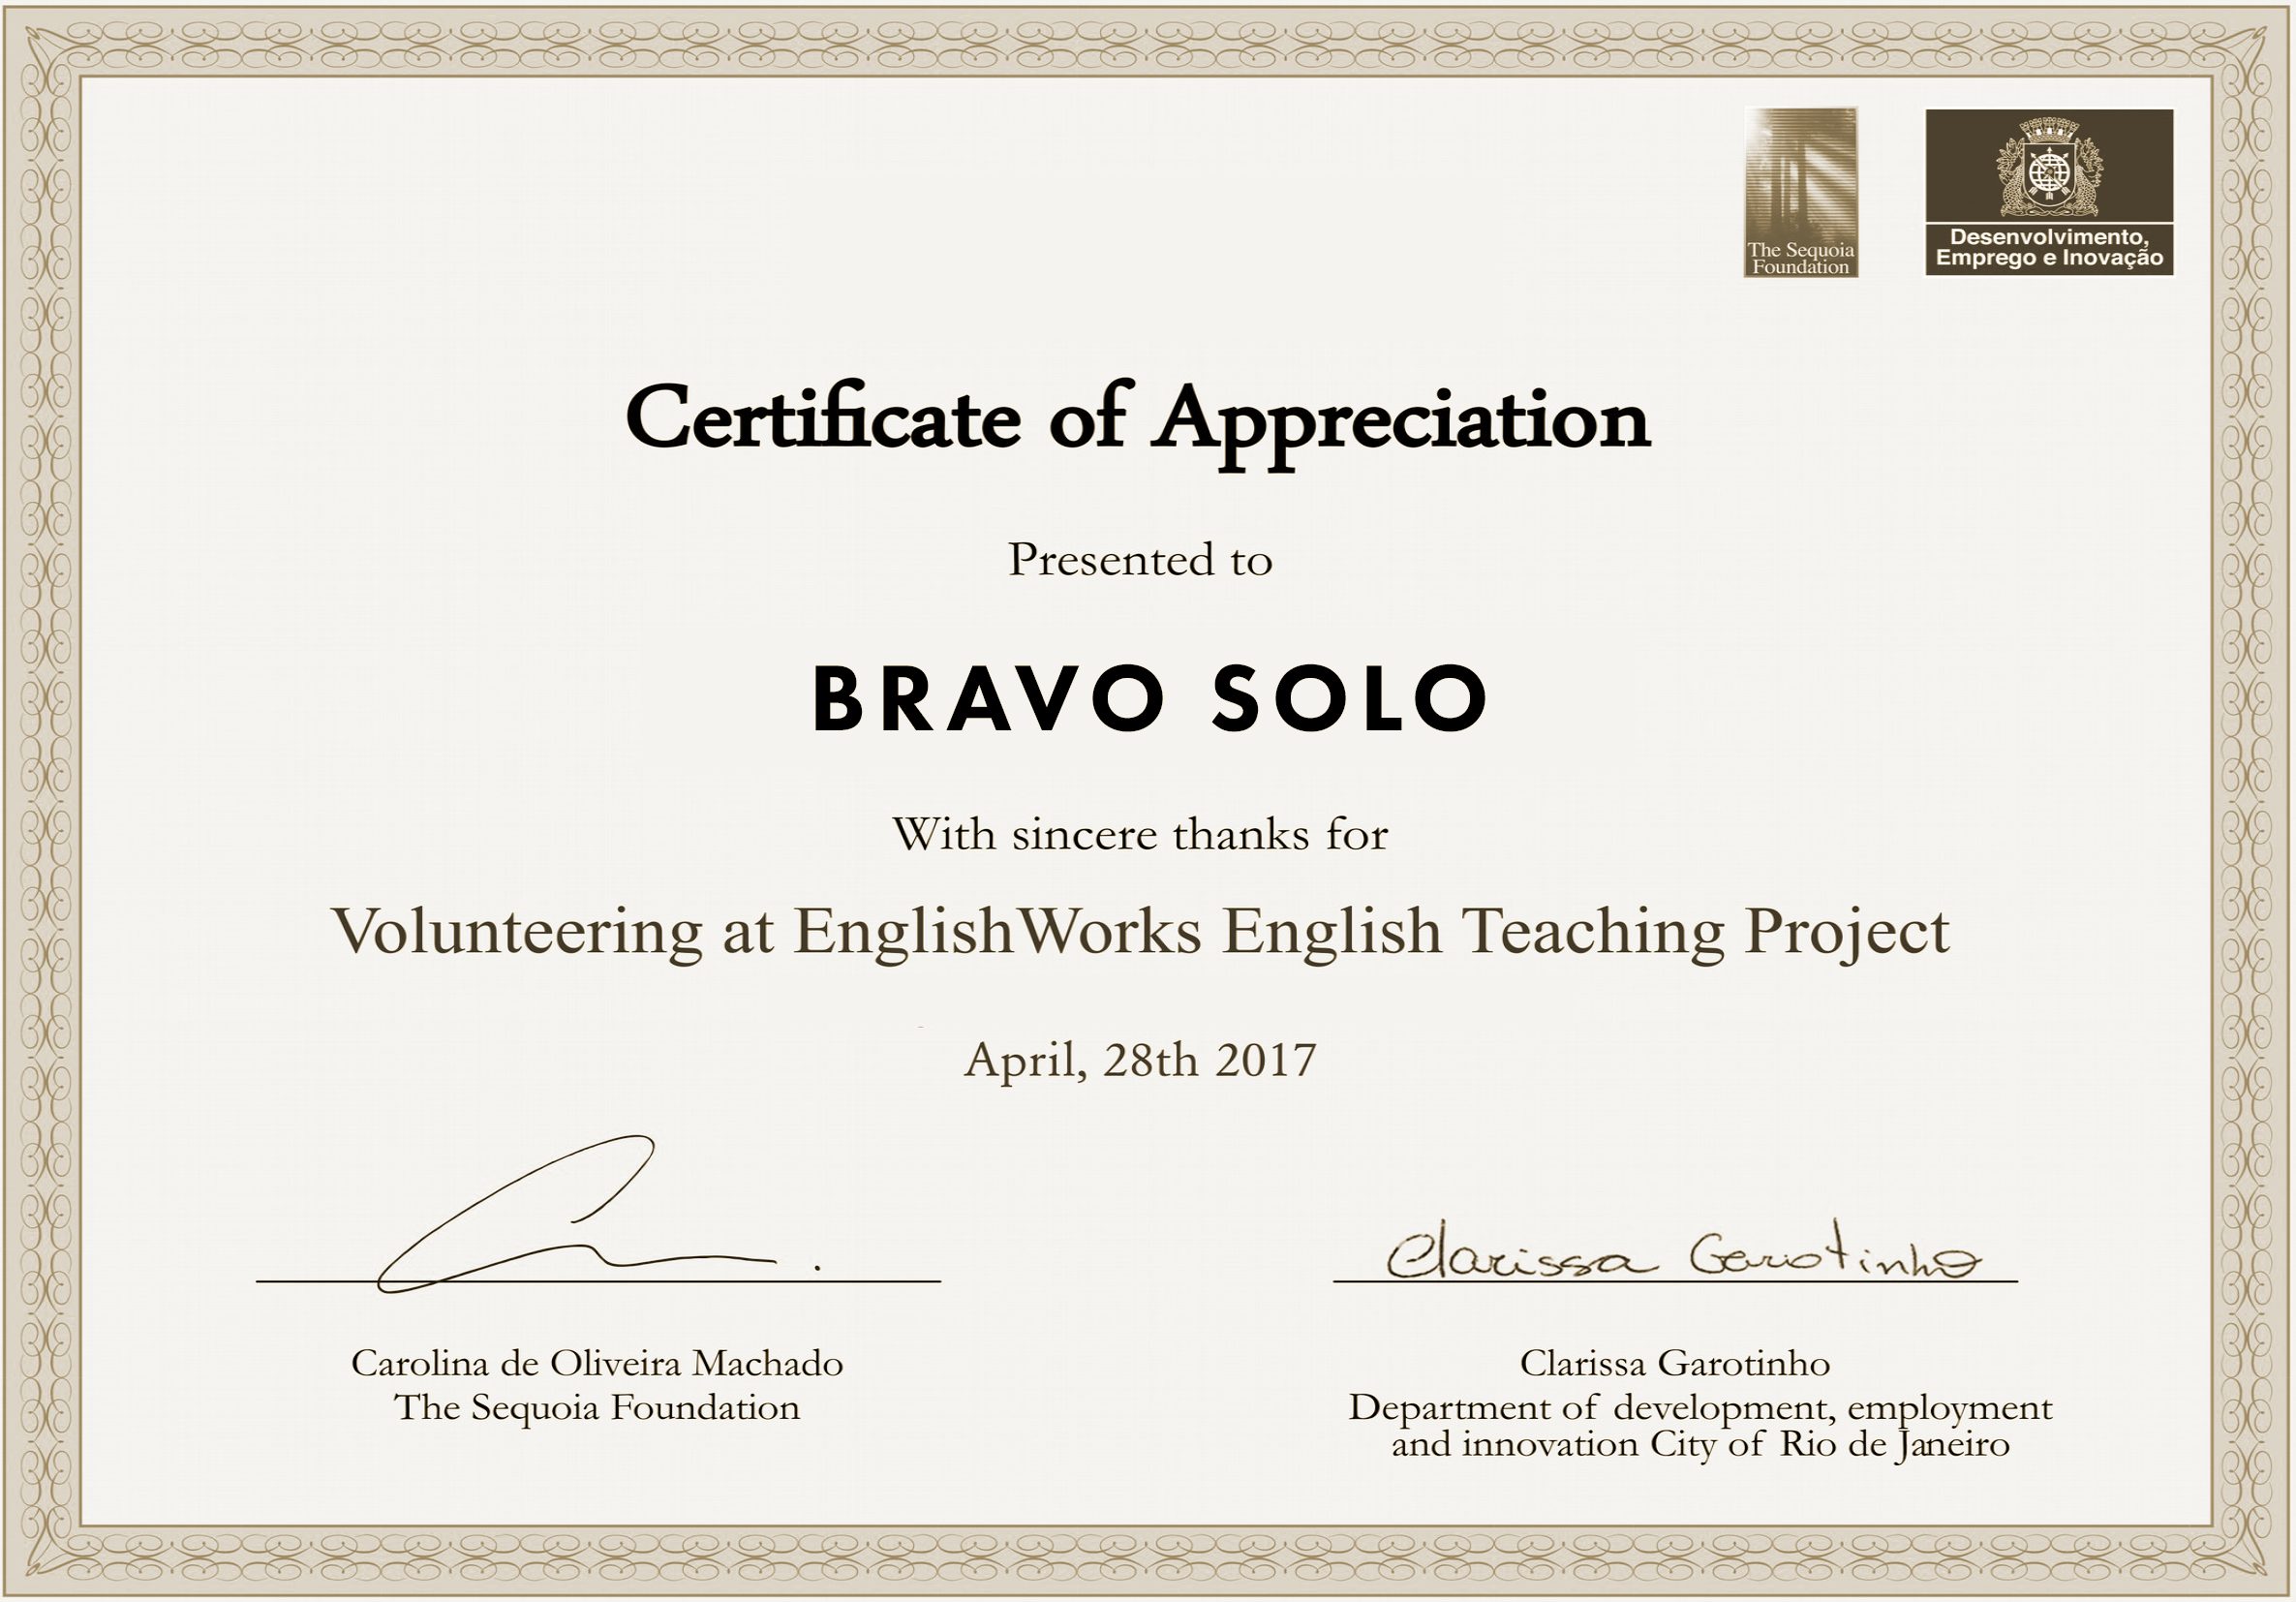 englishworks_certificate.png